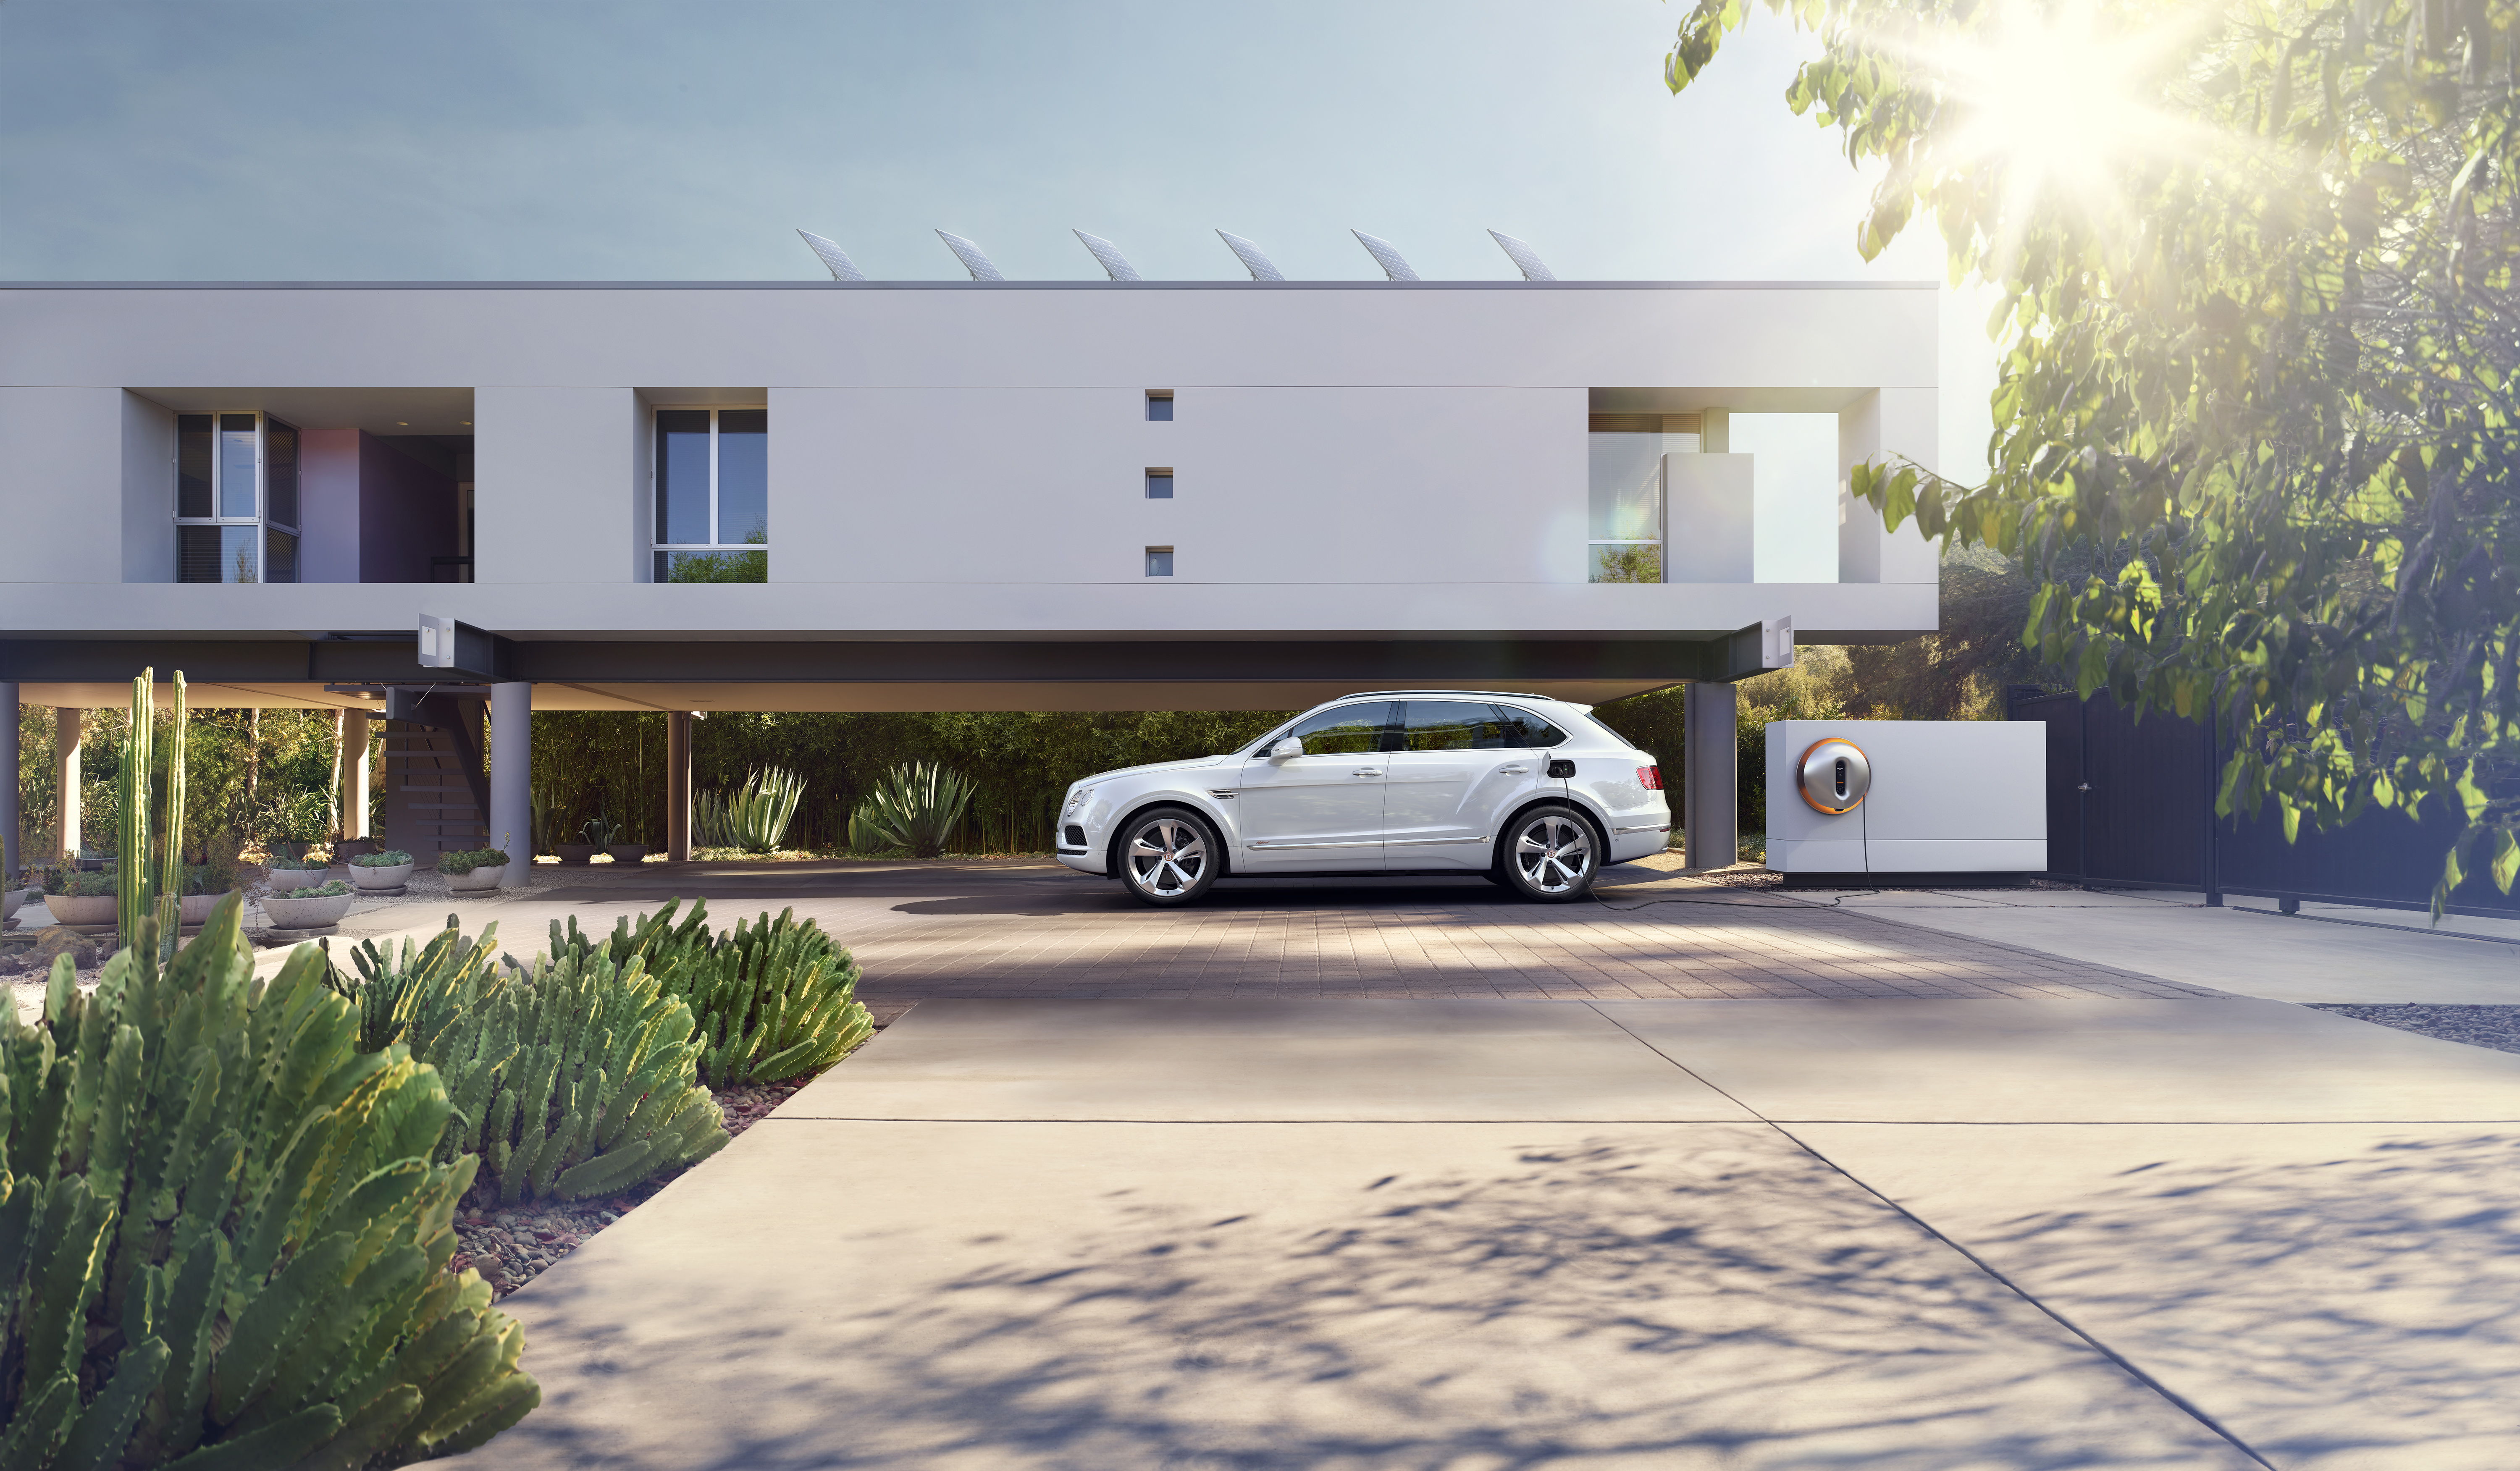 The Bentayga Hybrid using a Strack charging point outside a modern home